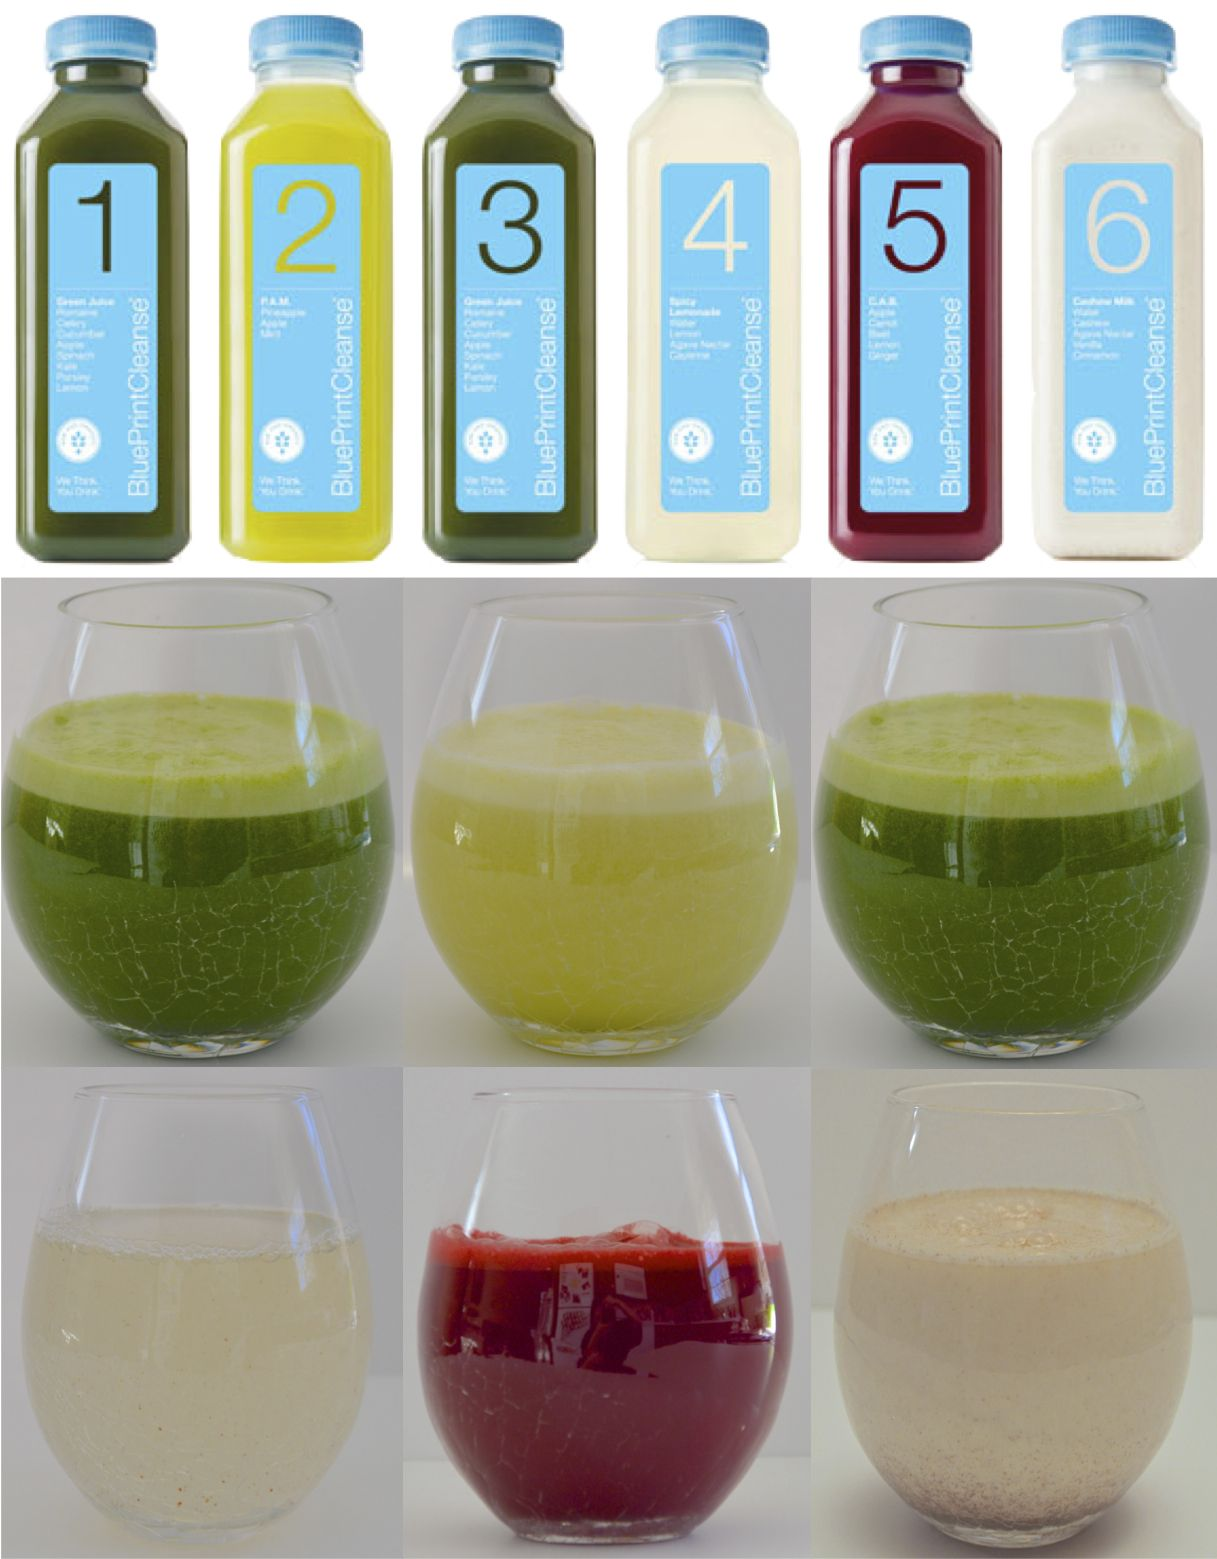 Diy blueprint cleanse i was literally looking at these juices diy blueprint cleanse i was literally looking at these juices today but dang malvernweather Choice Image